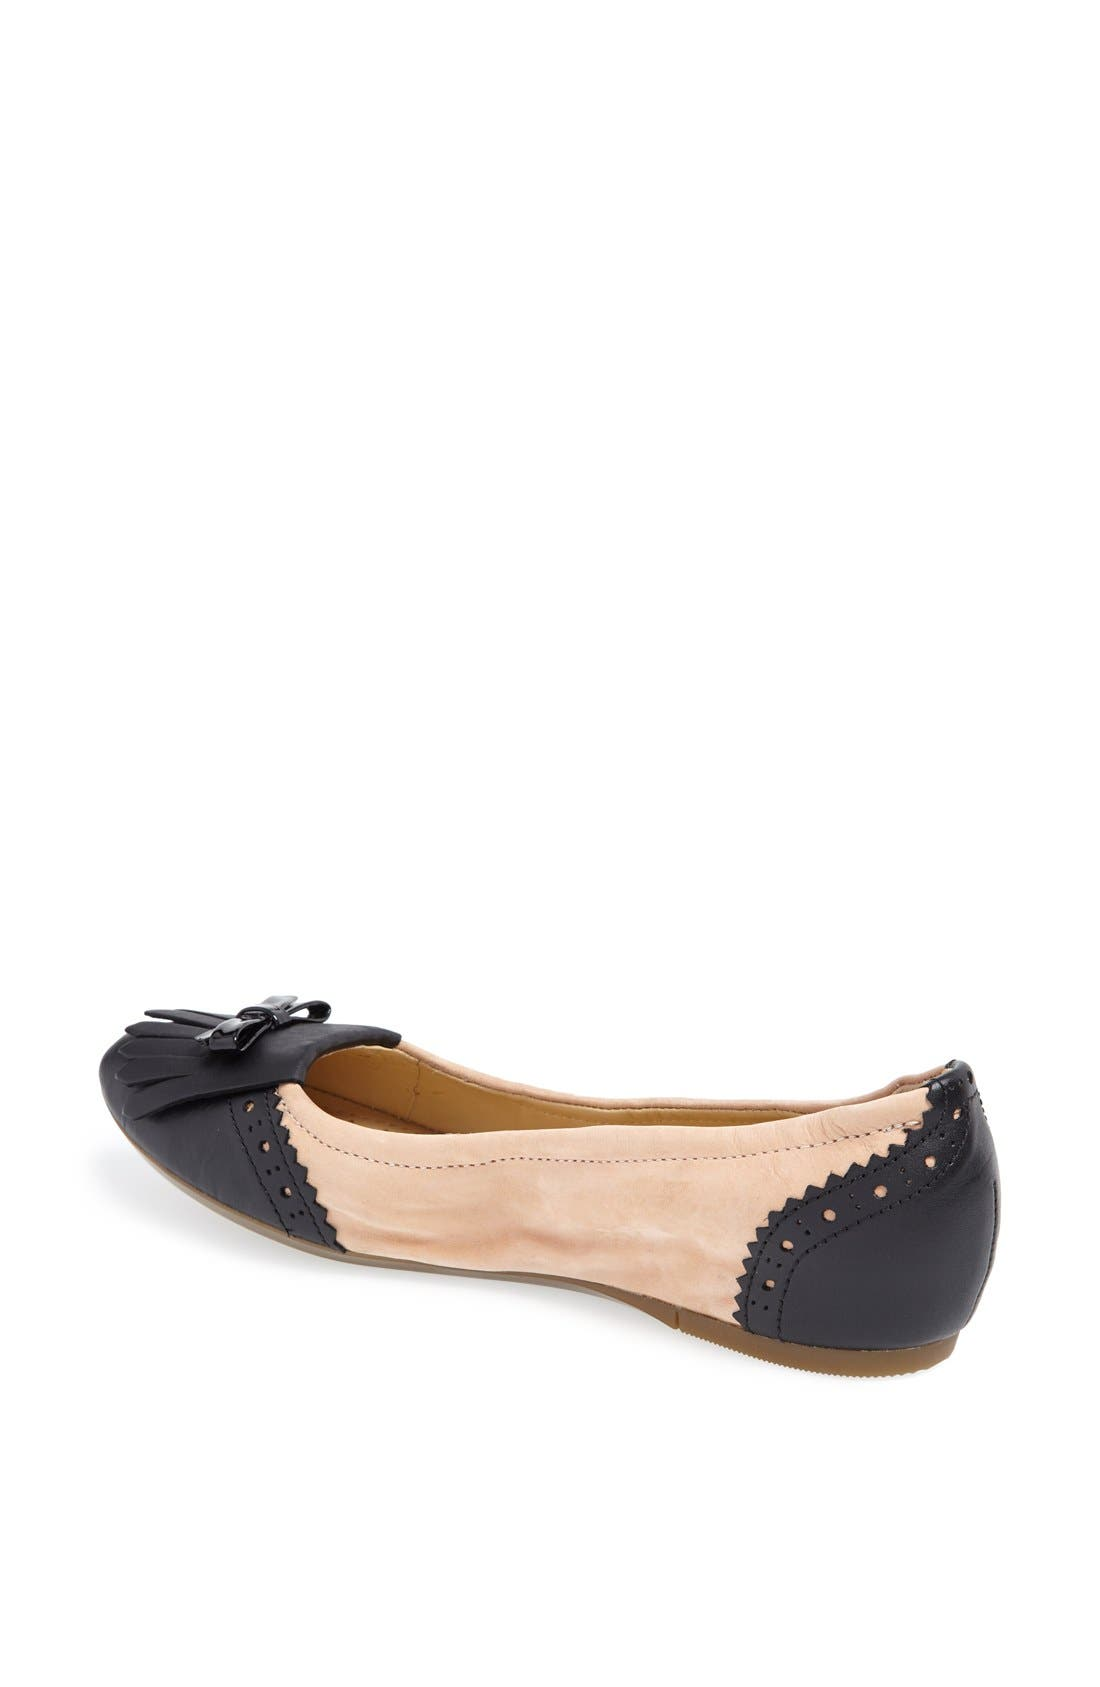 Alternate Image 2  - Geox 'Karima' Leather Flat